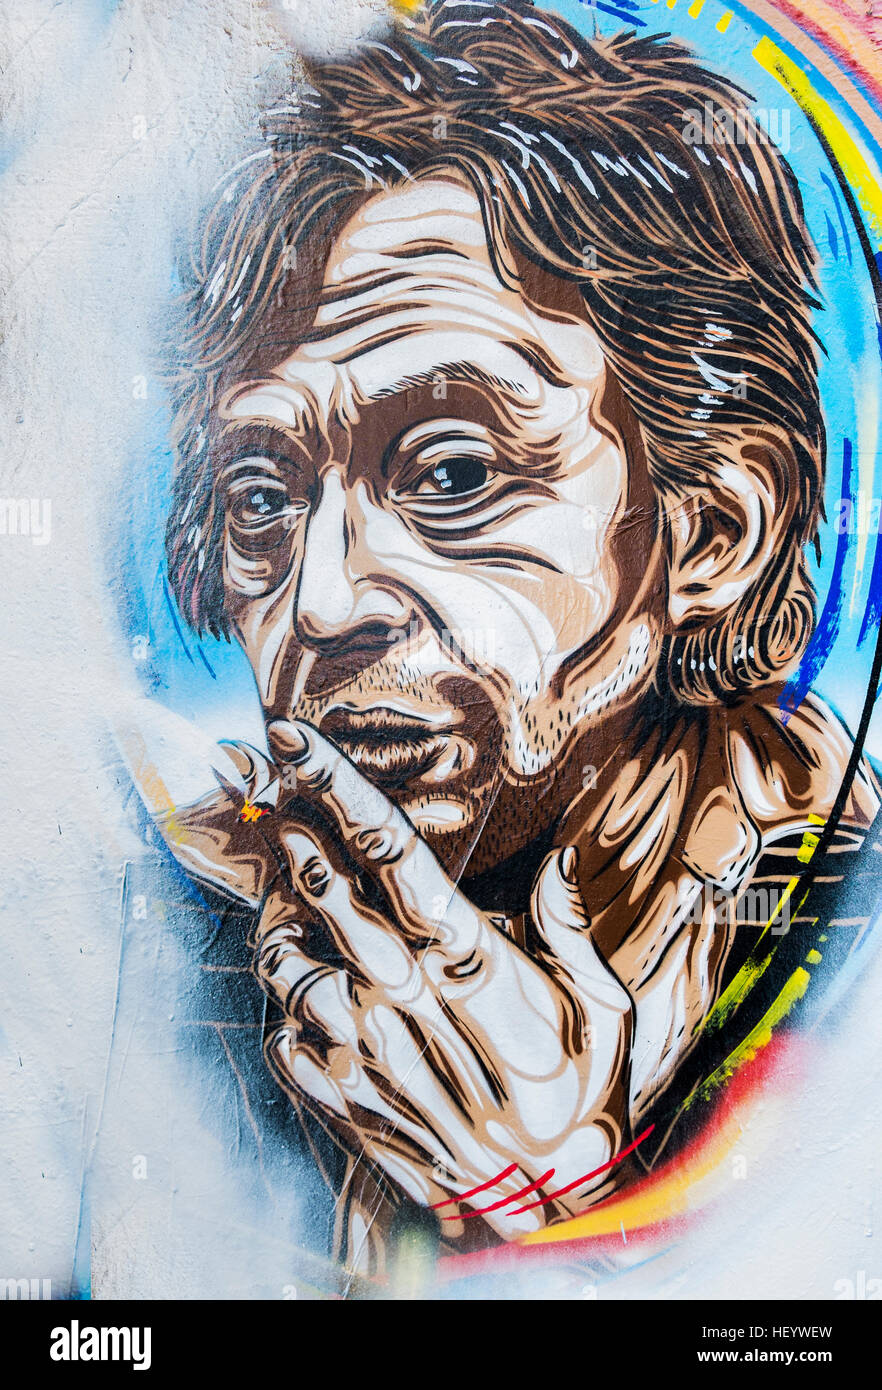 stencil graffito showing french composer and singer serge gainsbourg - Stock Image